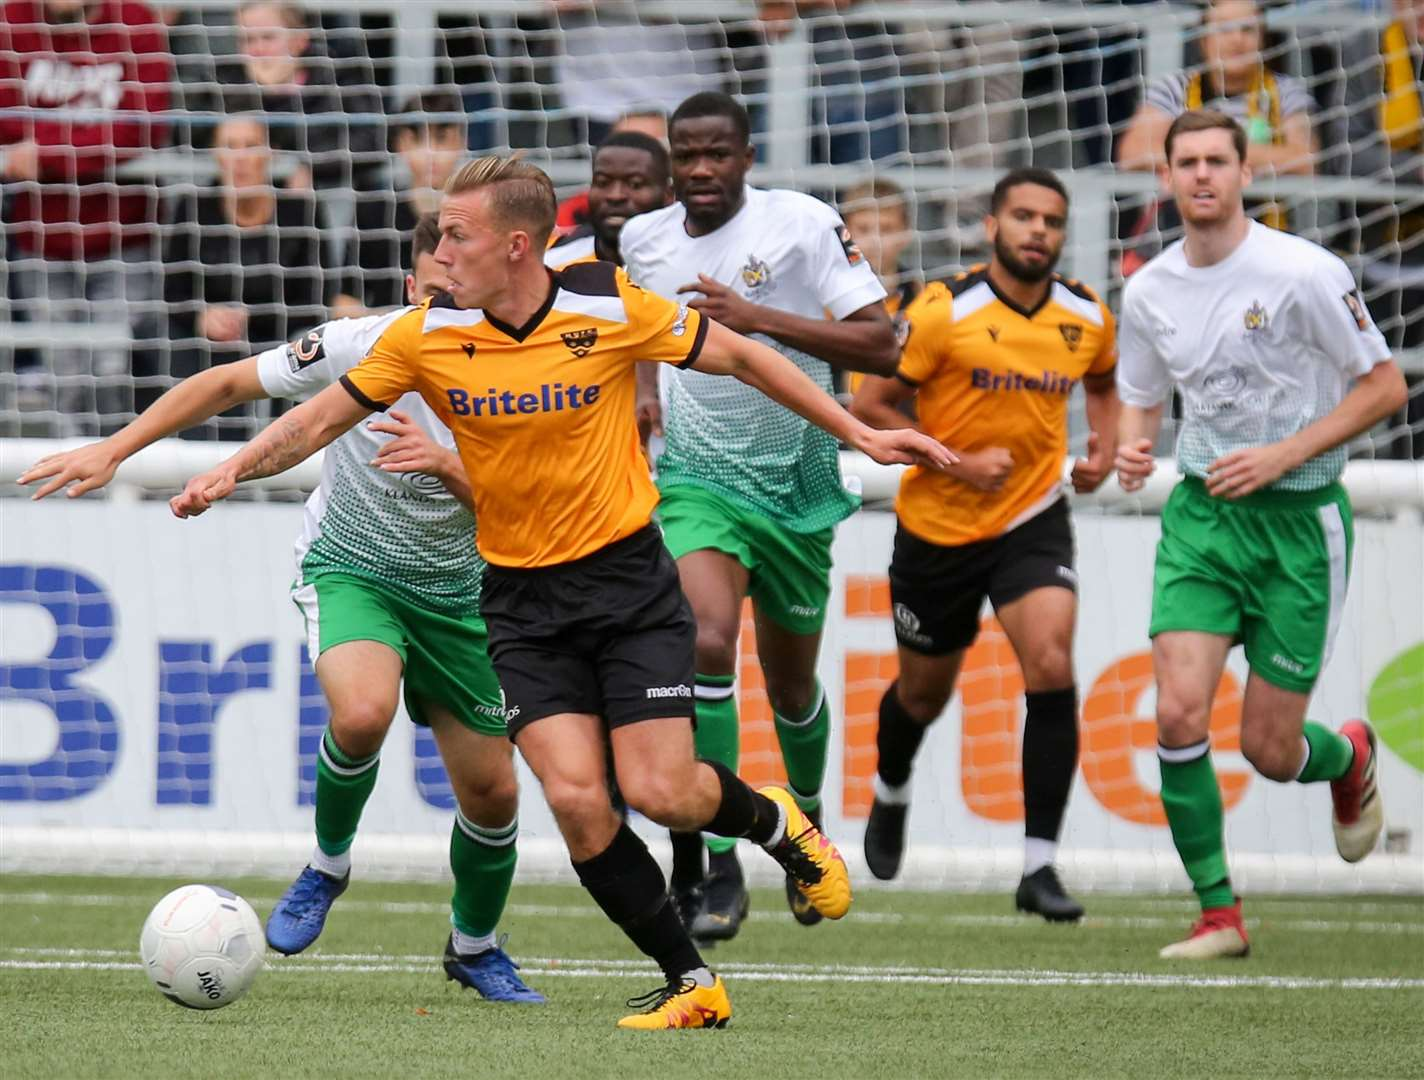 Sam Corne hasn't played for Maidstone since this match against St Albans Picture: Matthew Walker